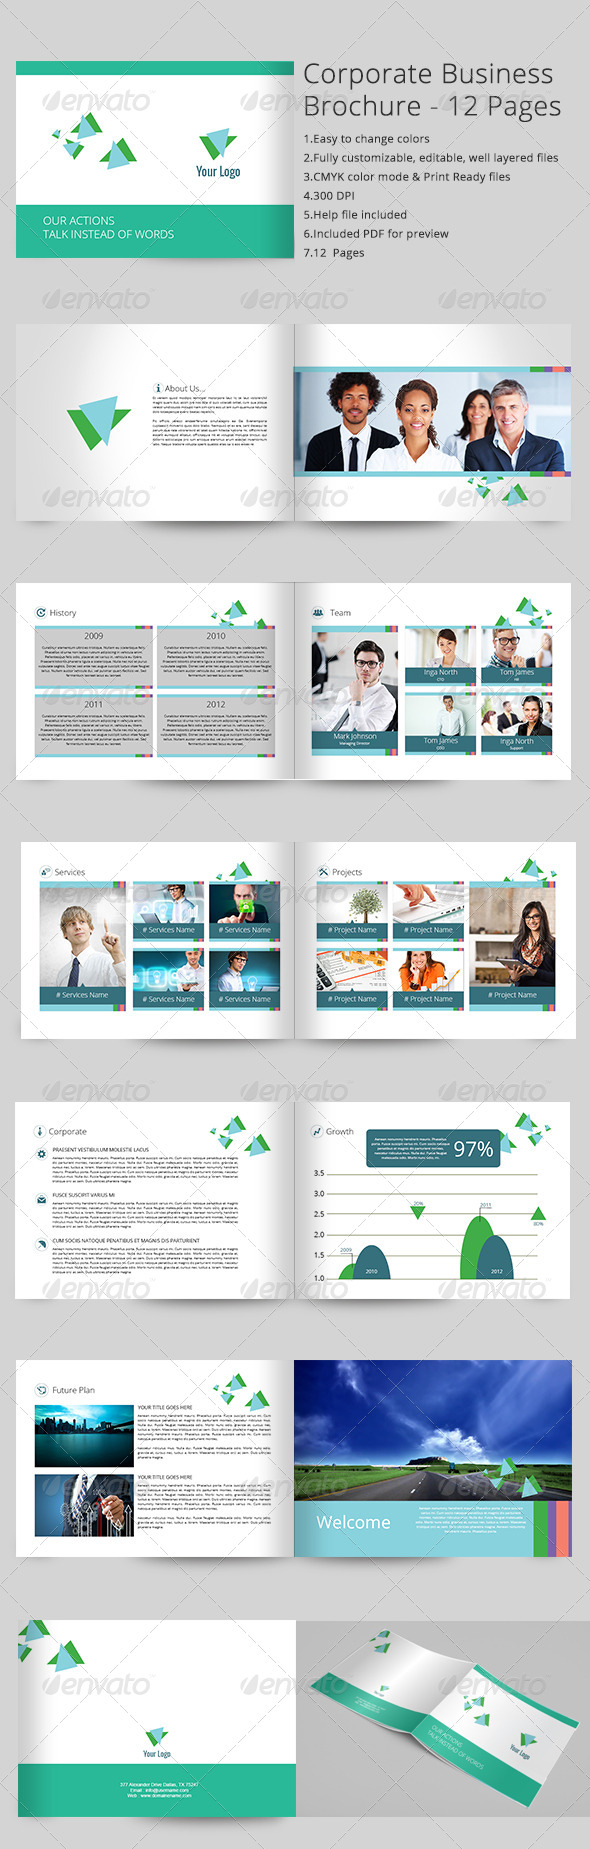 GraphicRiver Corporate Business Brochure 12 Pages 7040010